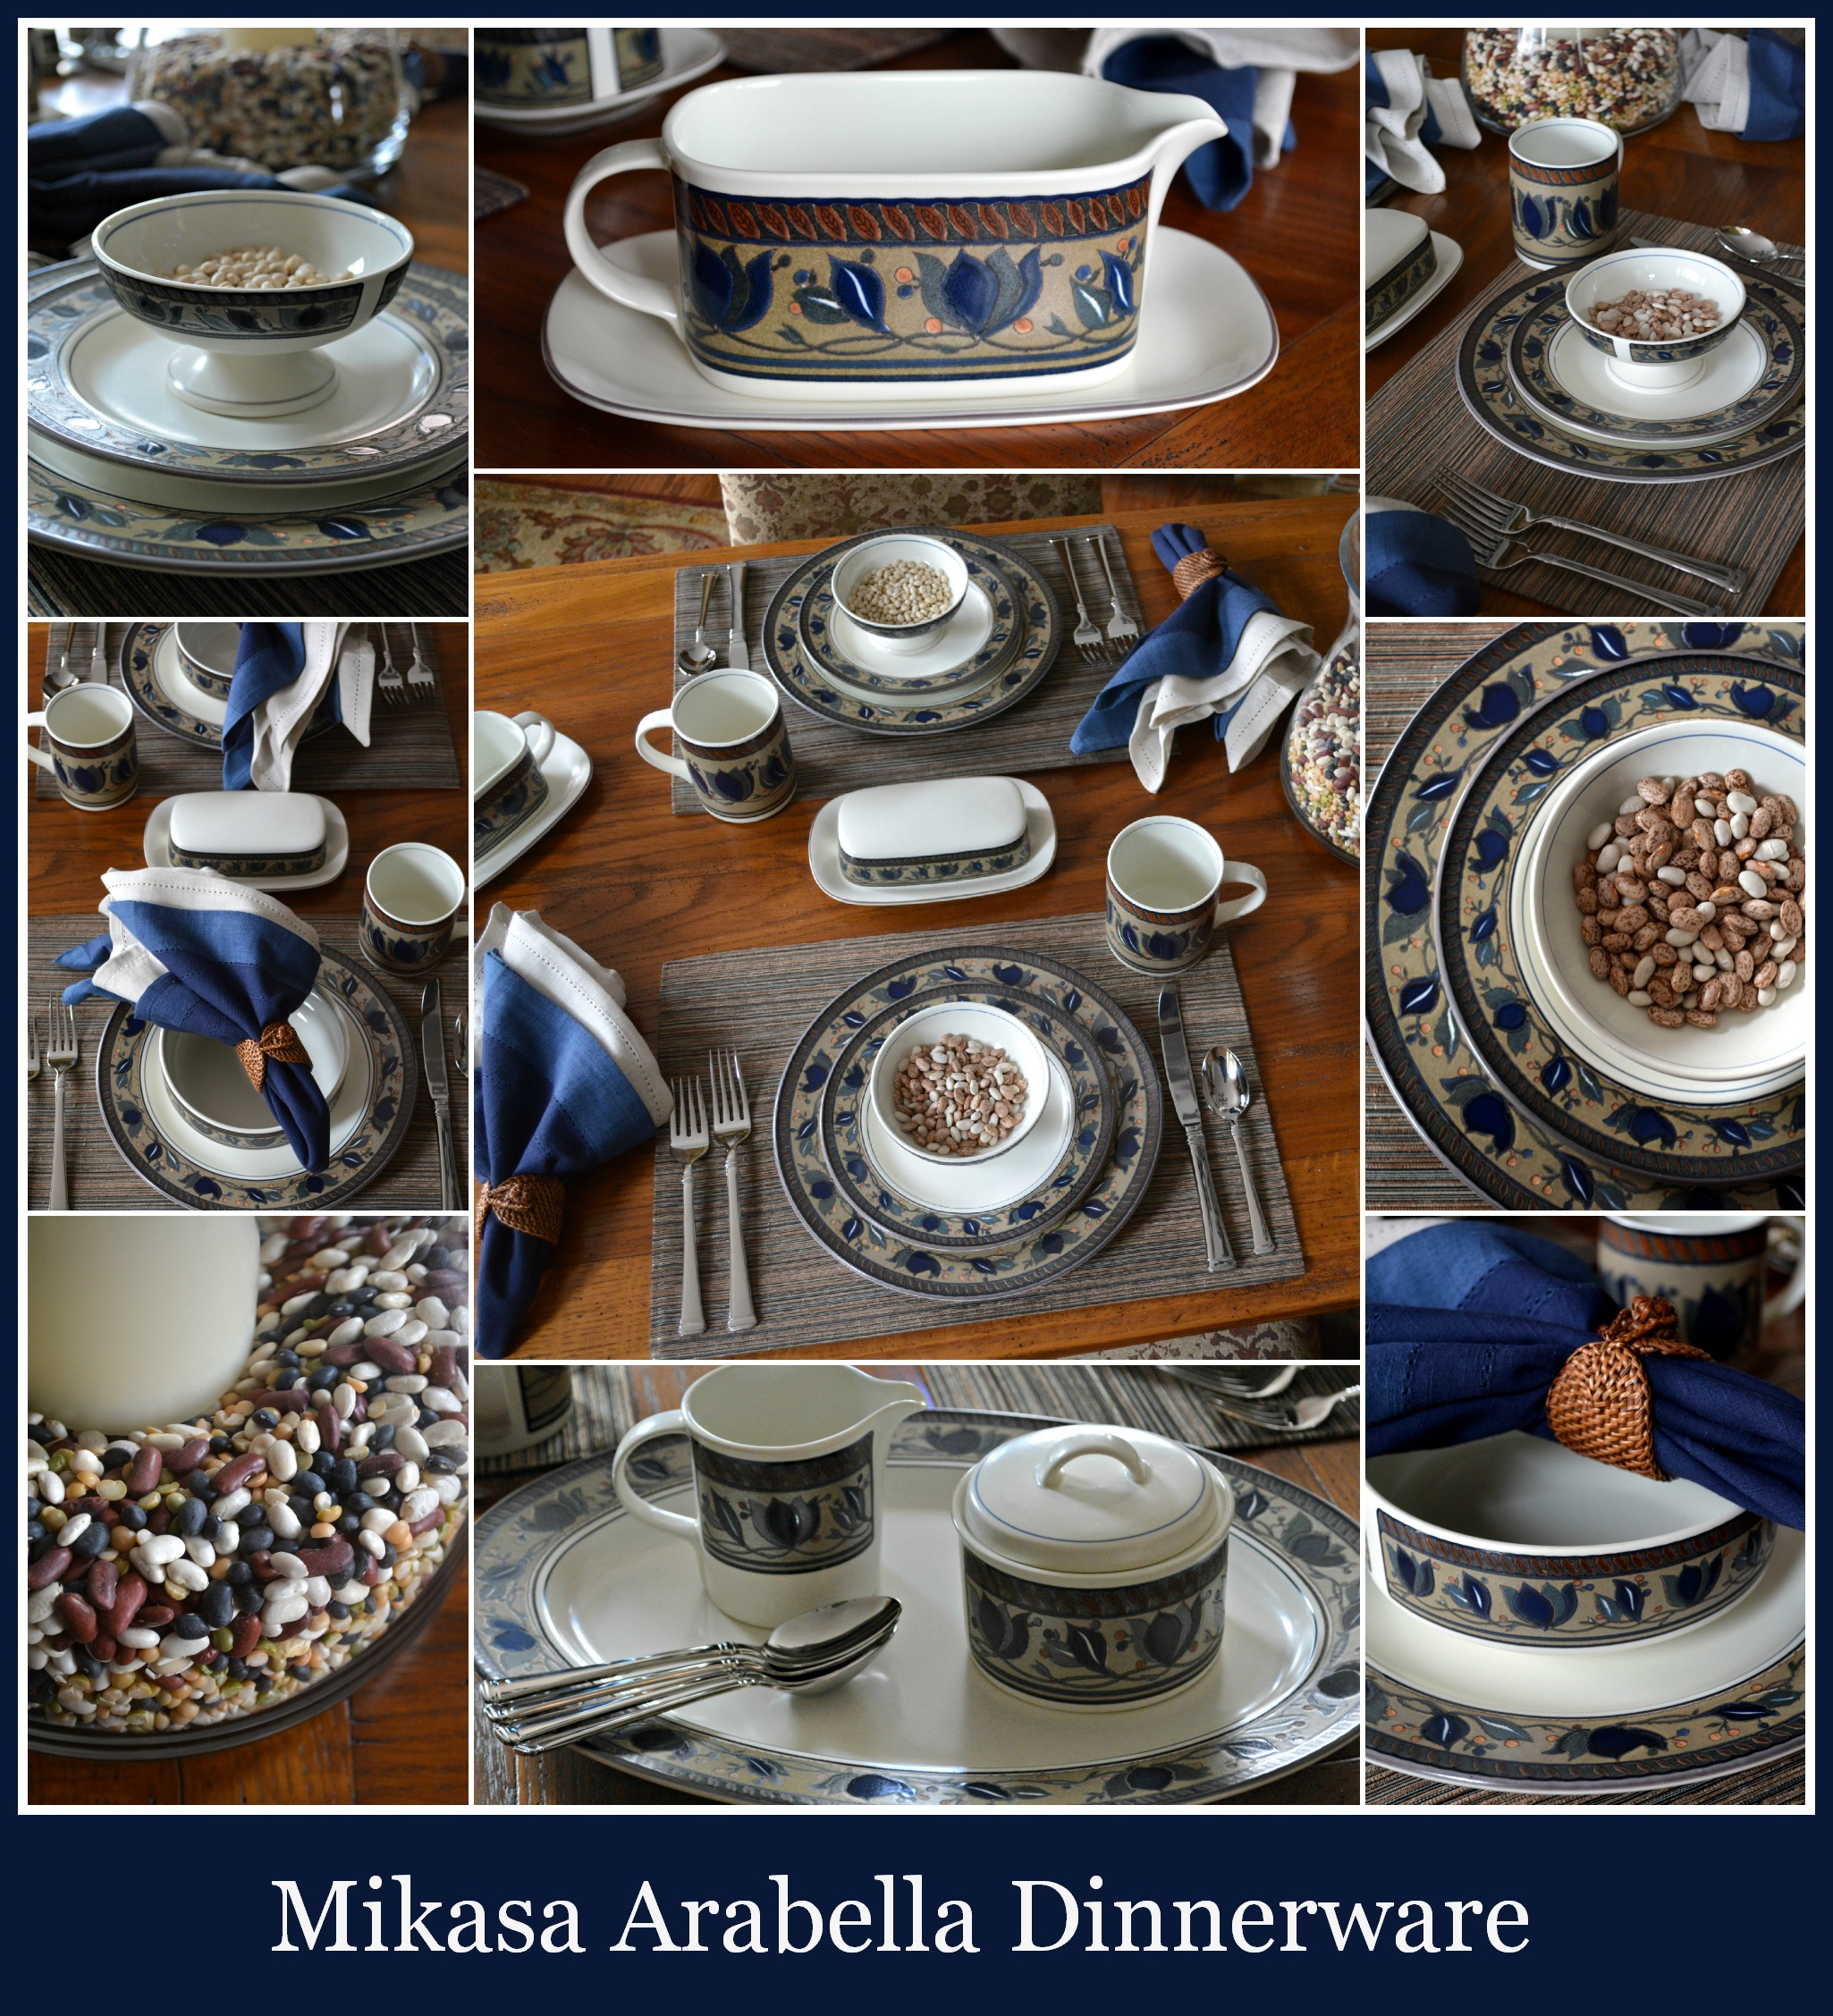 Mikasa Arabella & At the Table: Mikasa Arabella u2013 Home is Where the Boat Is